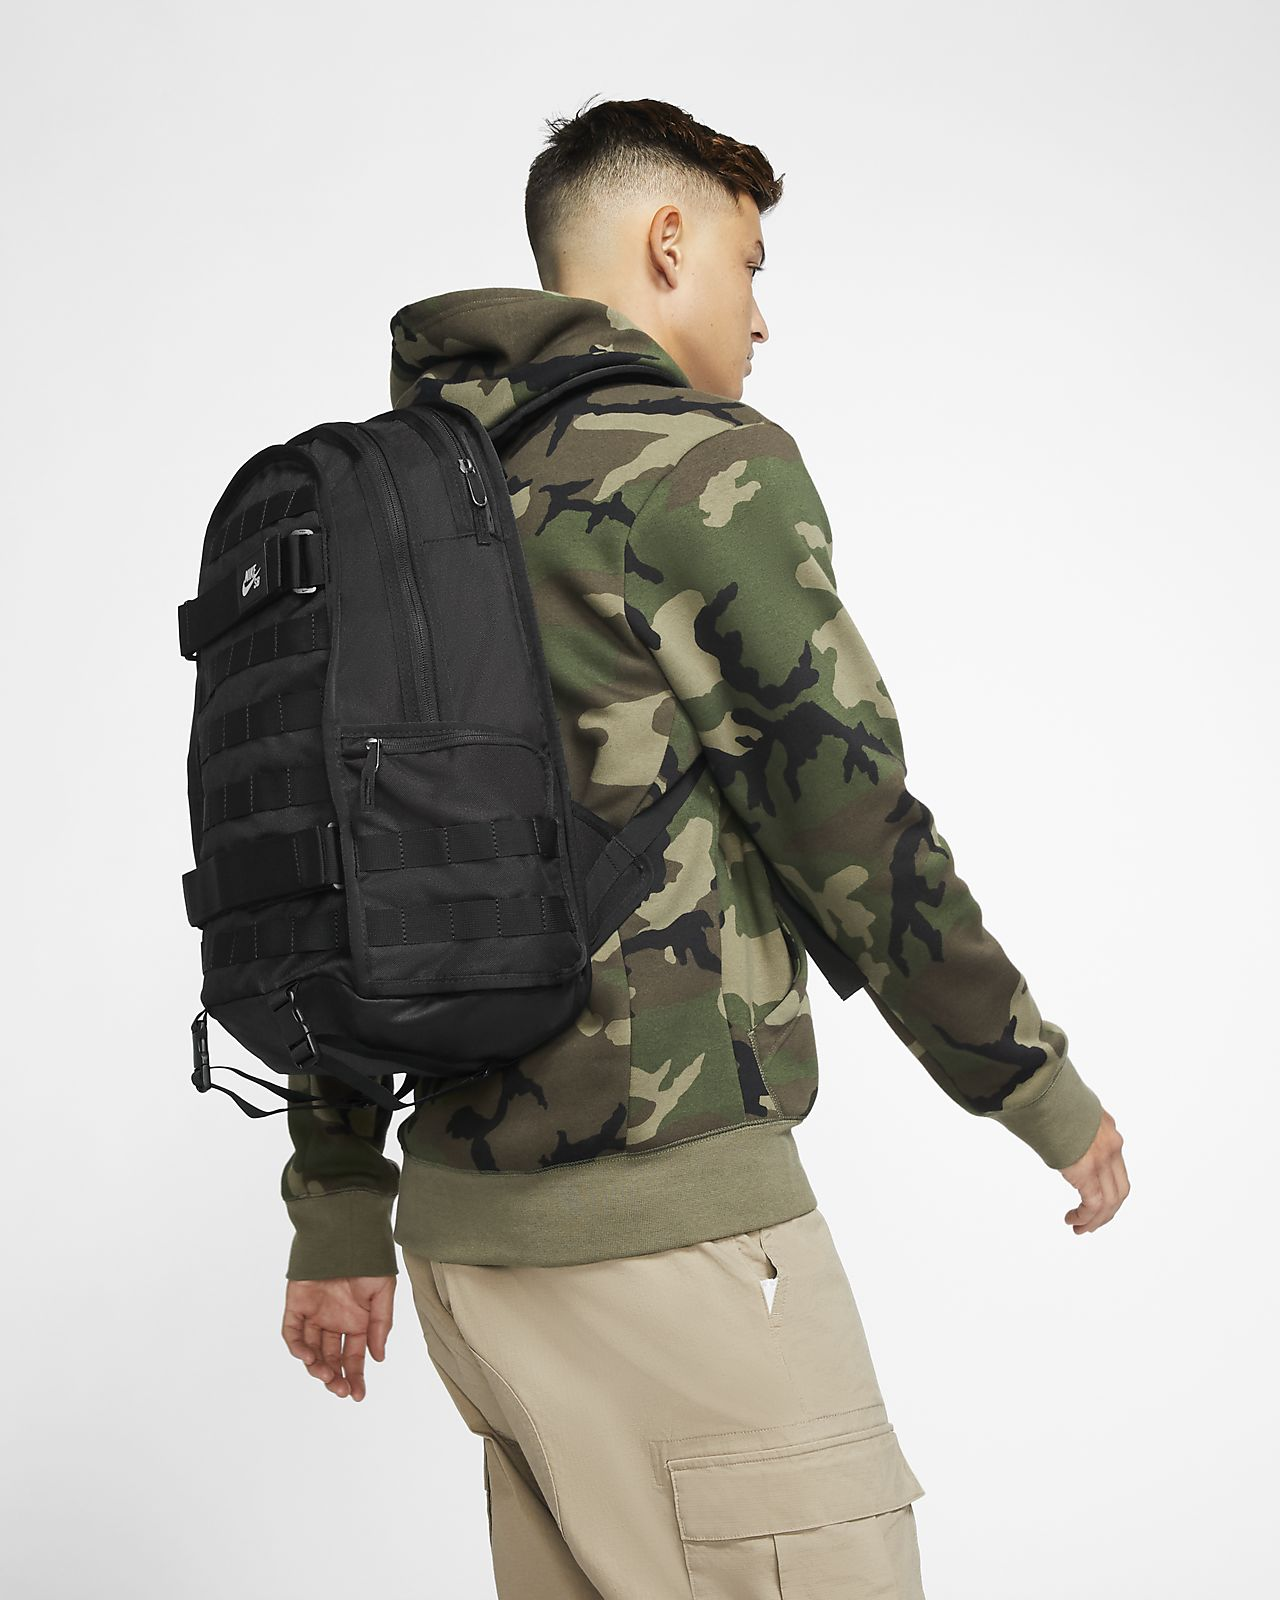 shopping clearance sale amazing selection Nike SB RPM Skateboarding Backpack